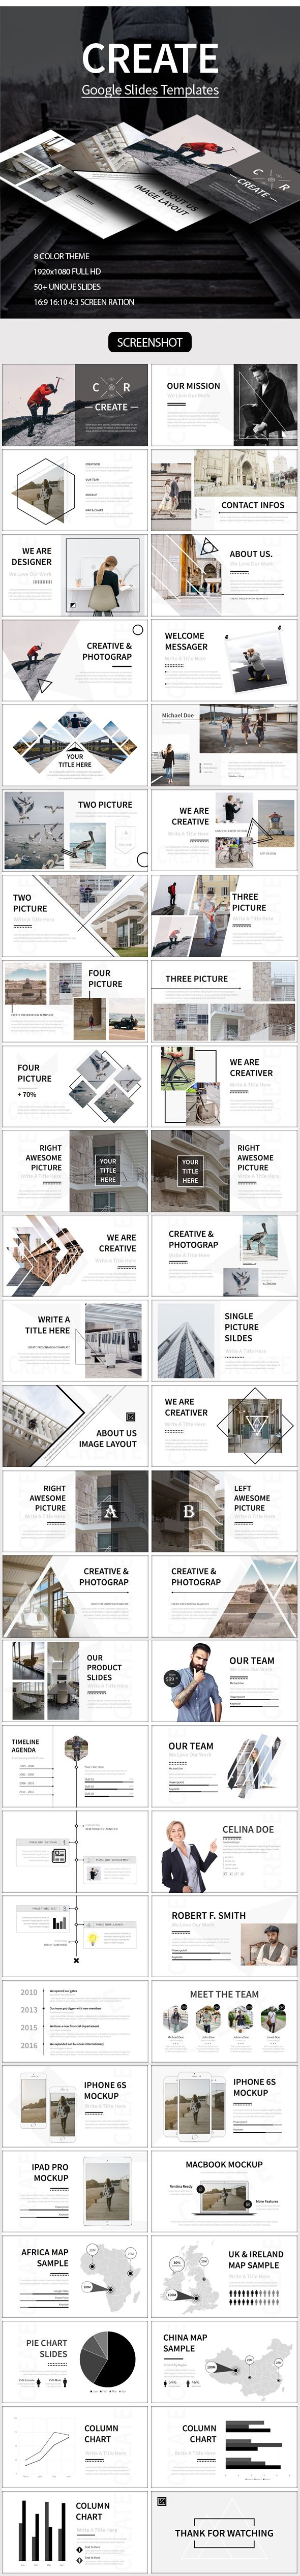 CREATE Google Slides Templates  #clean #easy • Download ➝ https://graphicriver.net/item/create-google-slides-templates/18074060?ref=pxcr